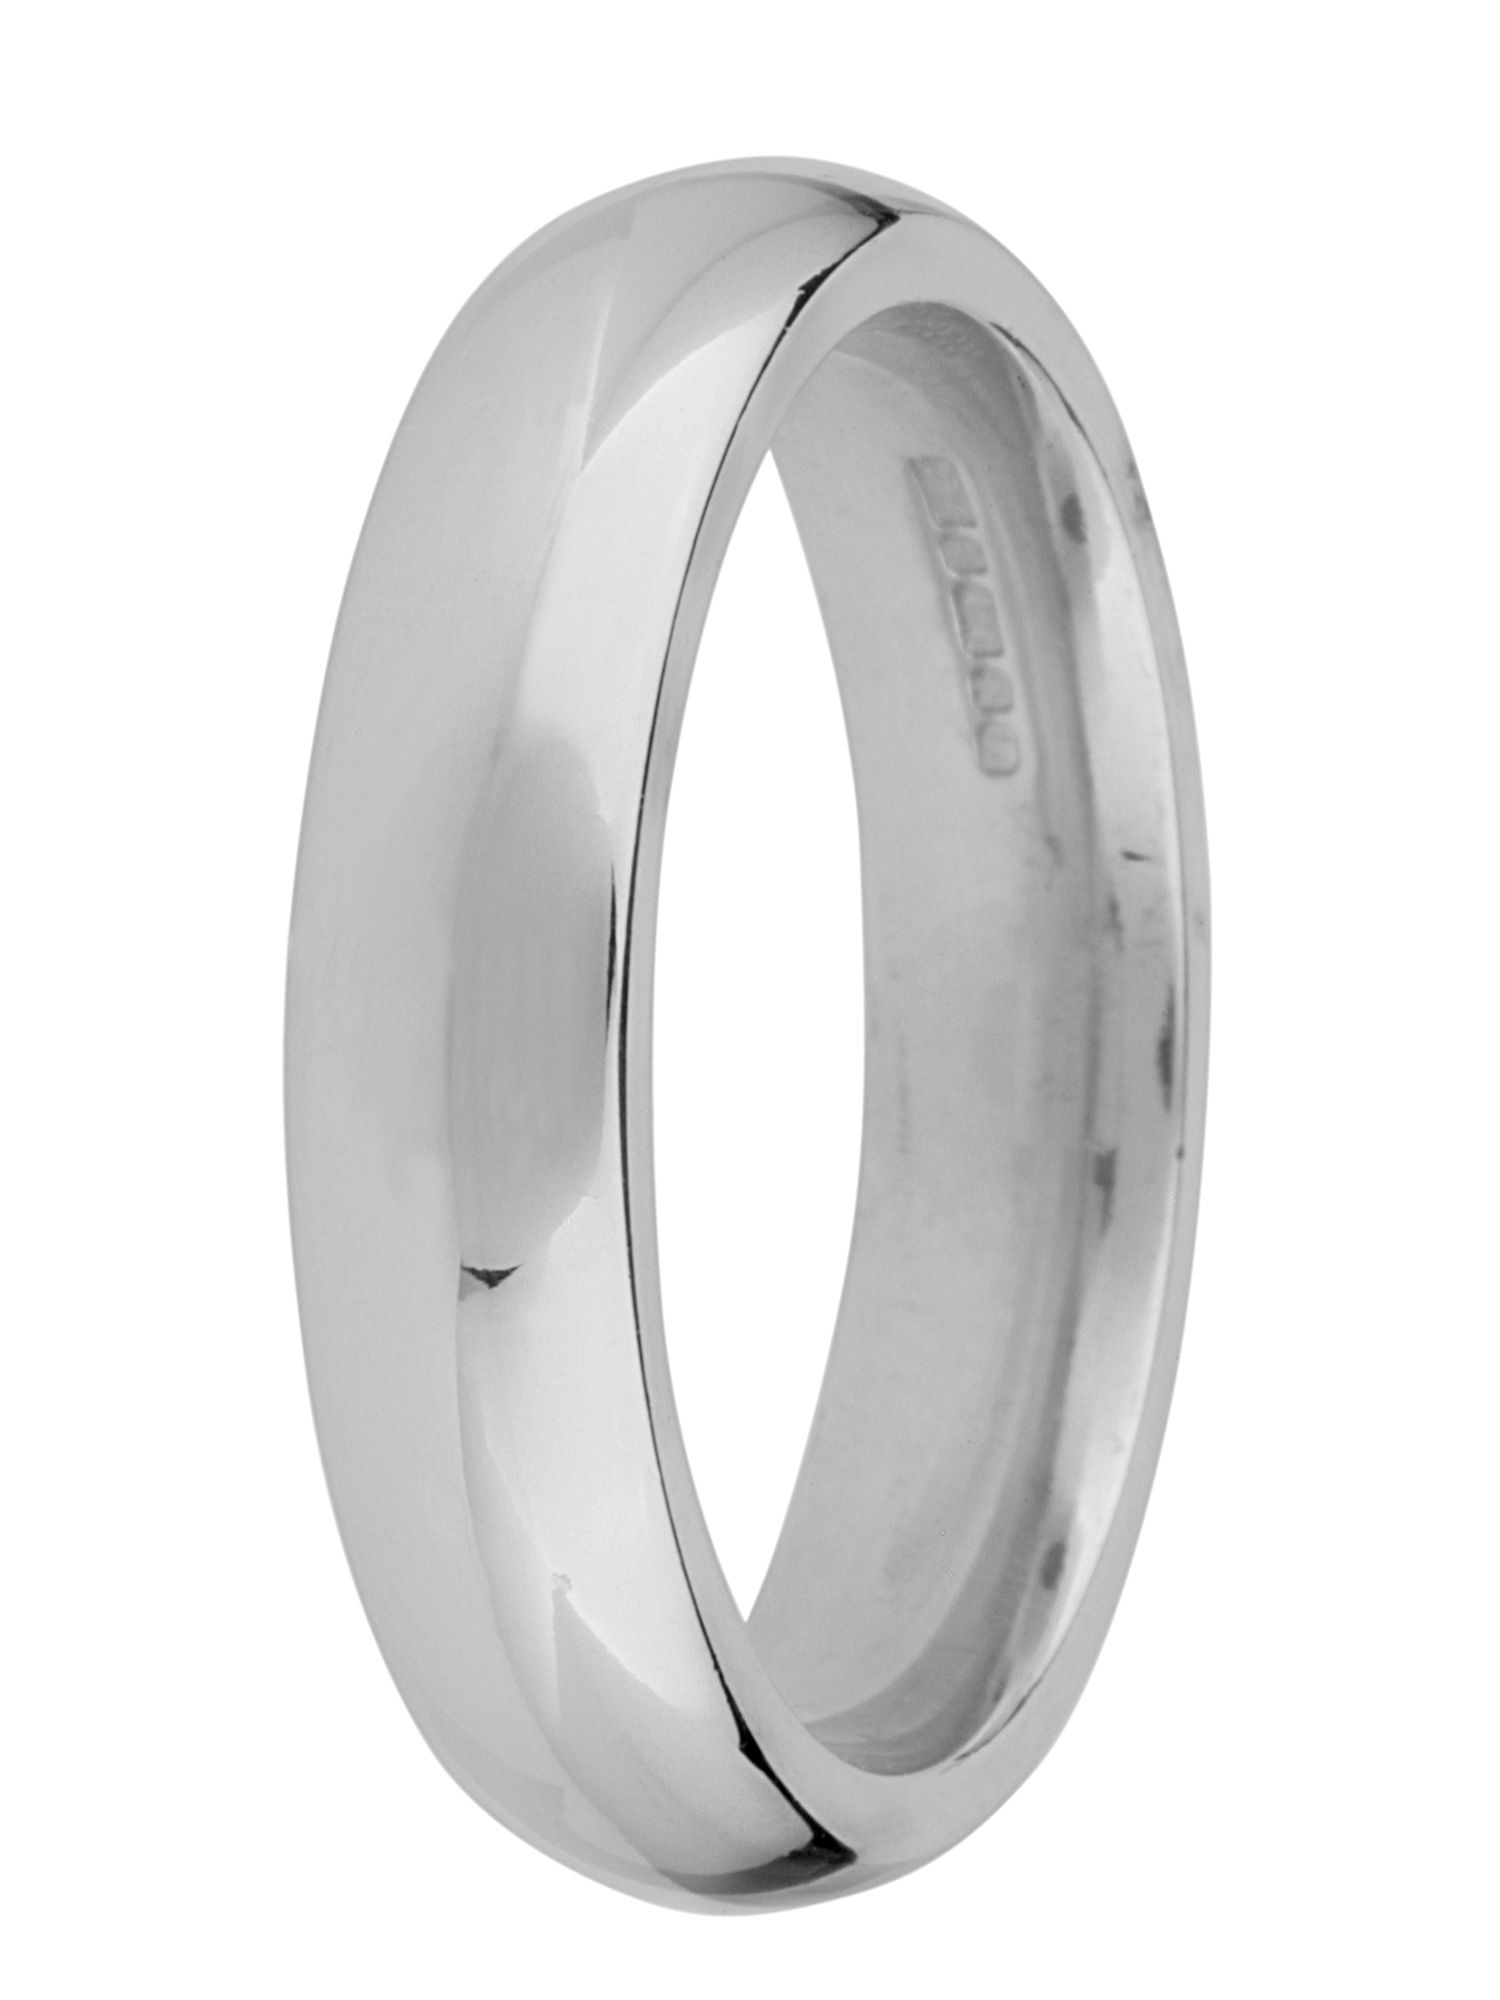 Grooms 18ct gold heavy court 5mm wedding ring - White Gold